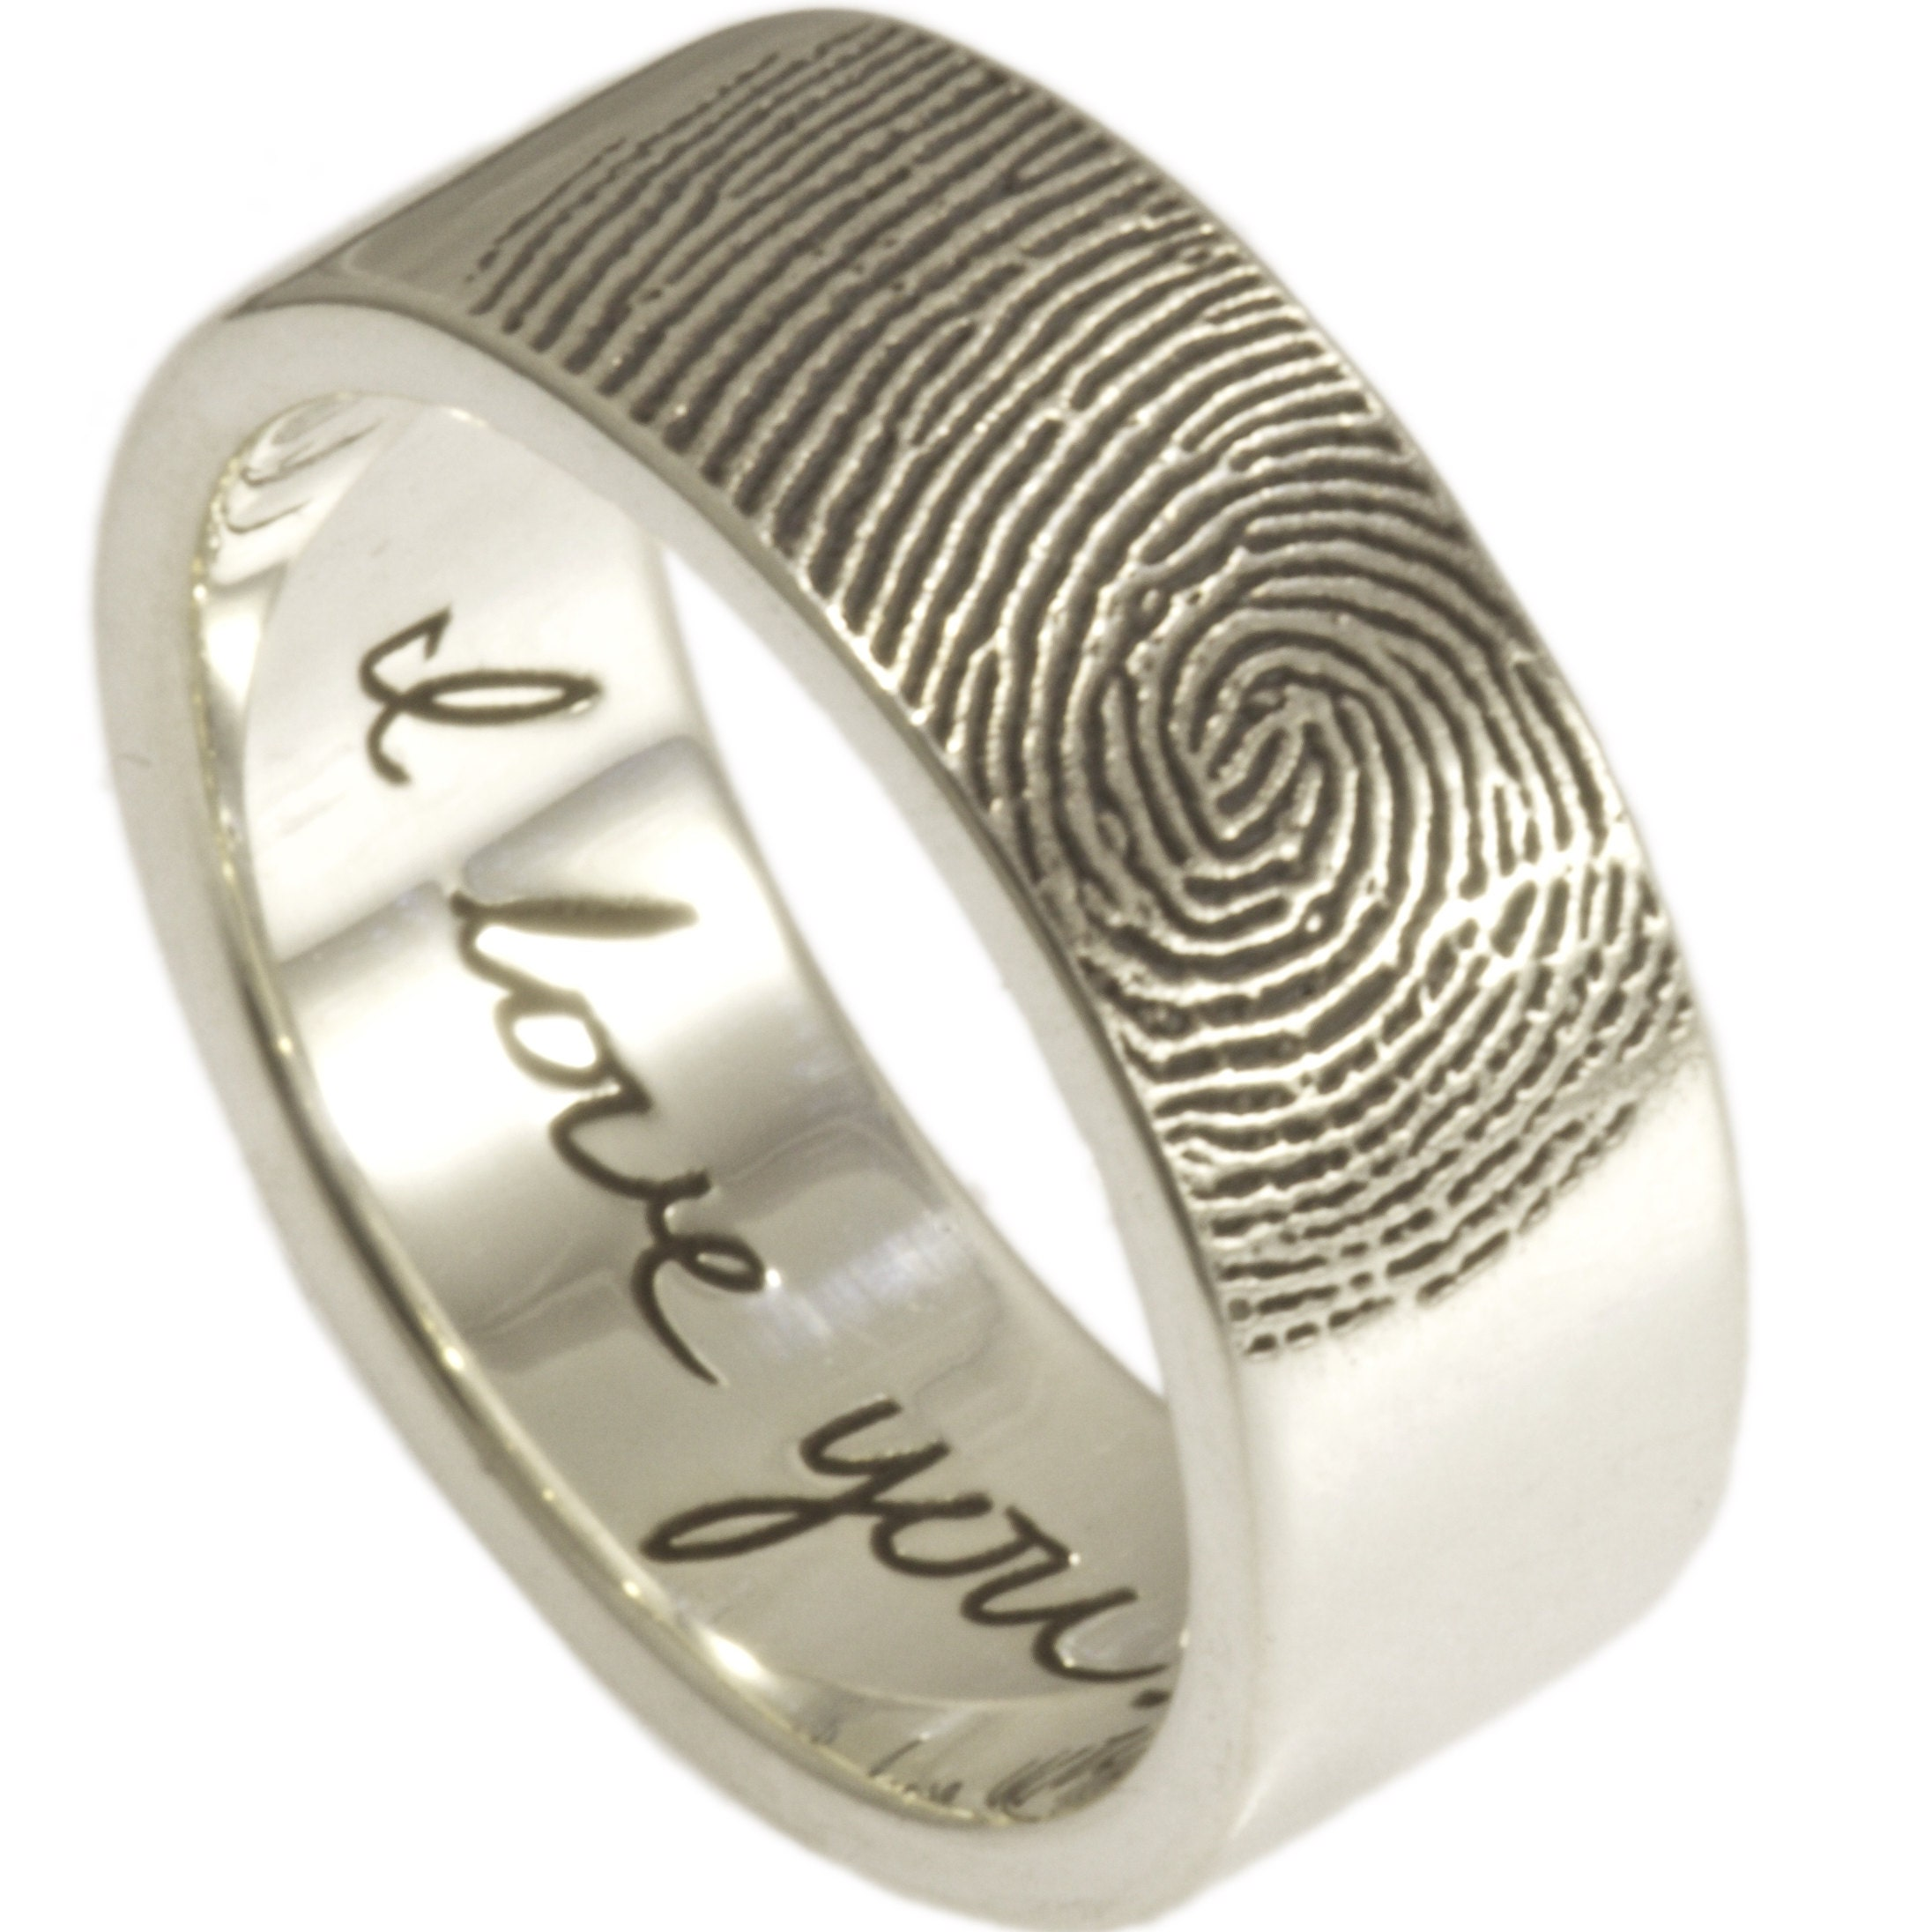 diamond engagement jess wedding fingerprint rings you a me practical brent ring